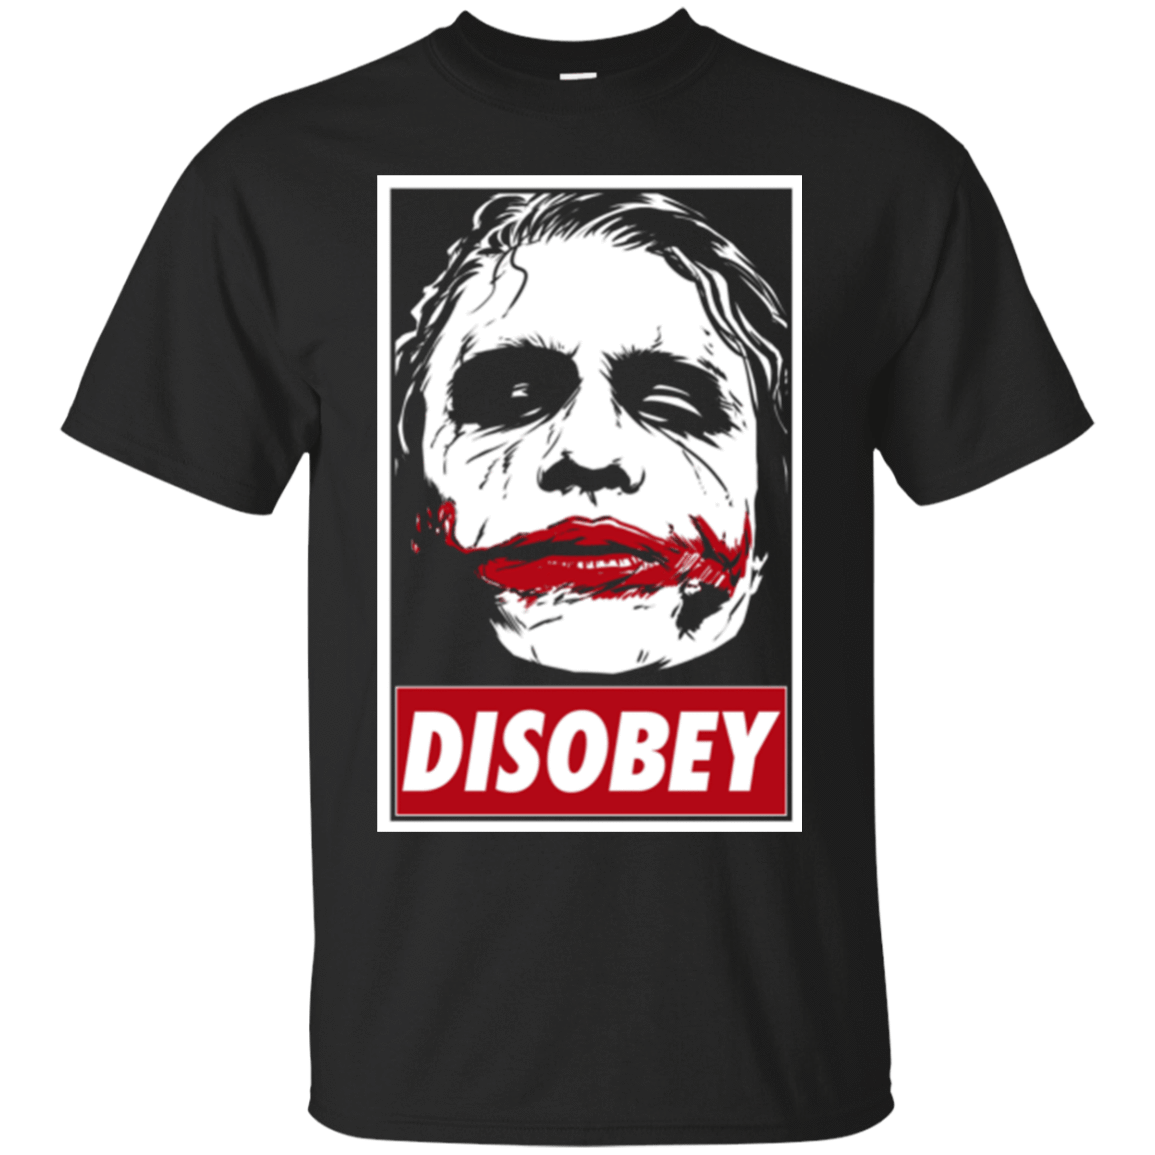 Chaos and Disobey T-Shirt